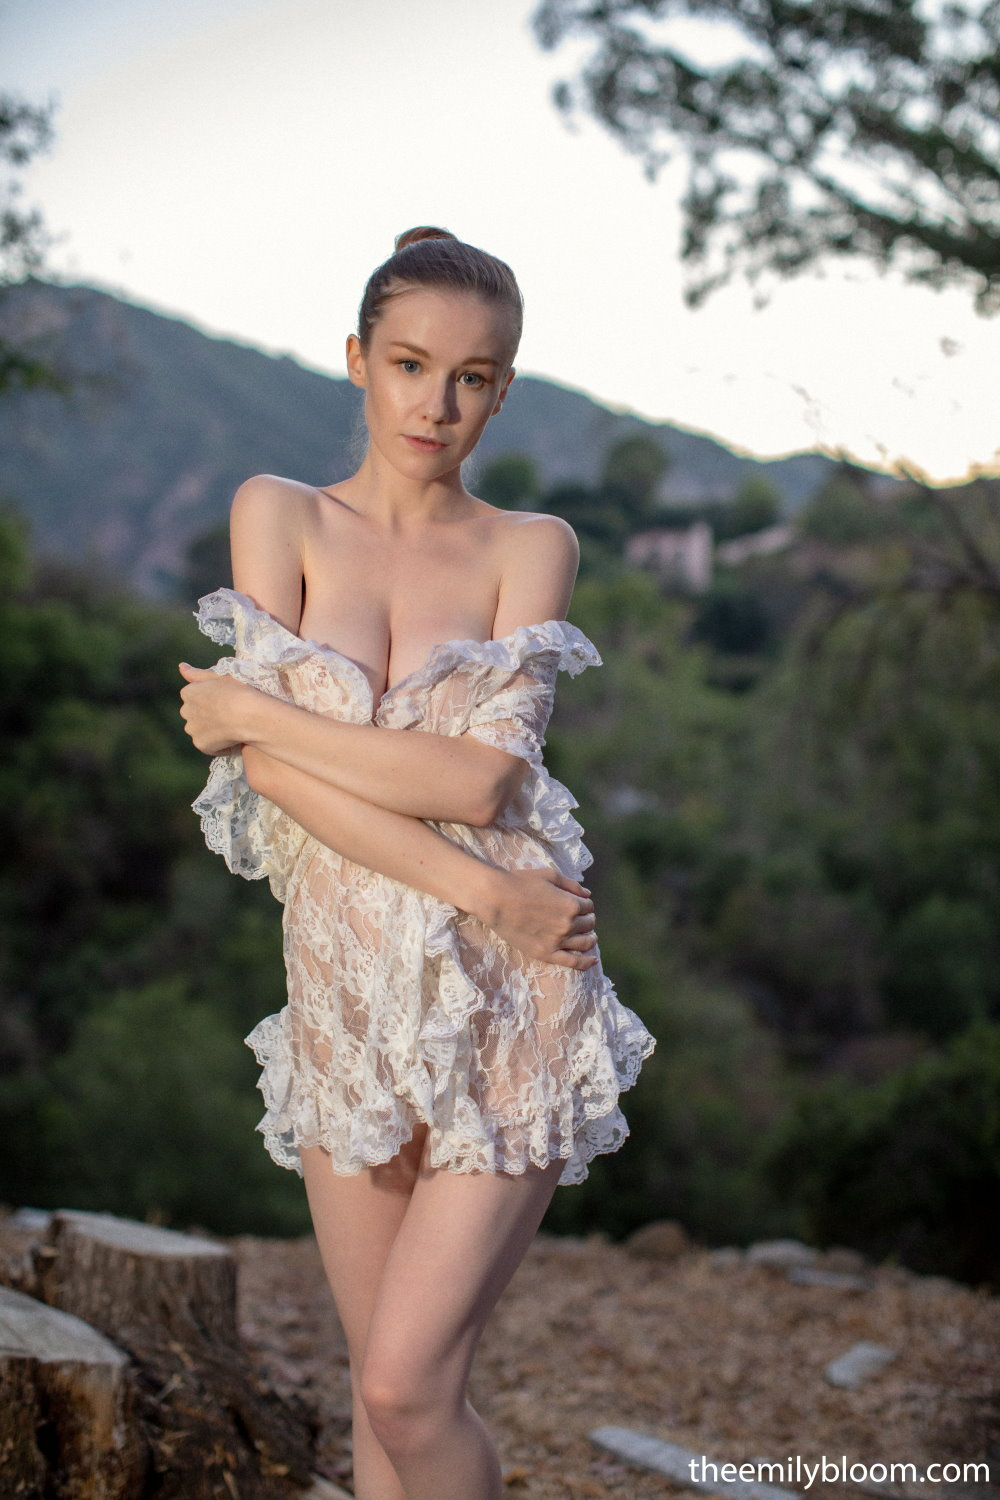 Emily Bloom Posing Nude Outdoors!